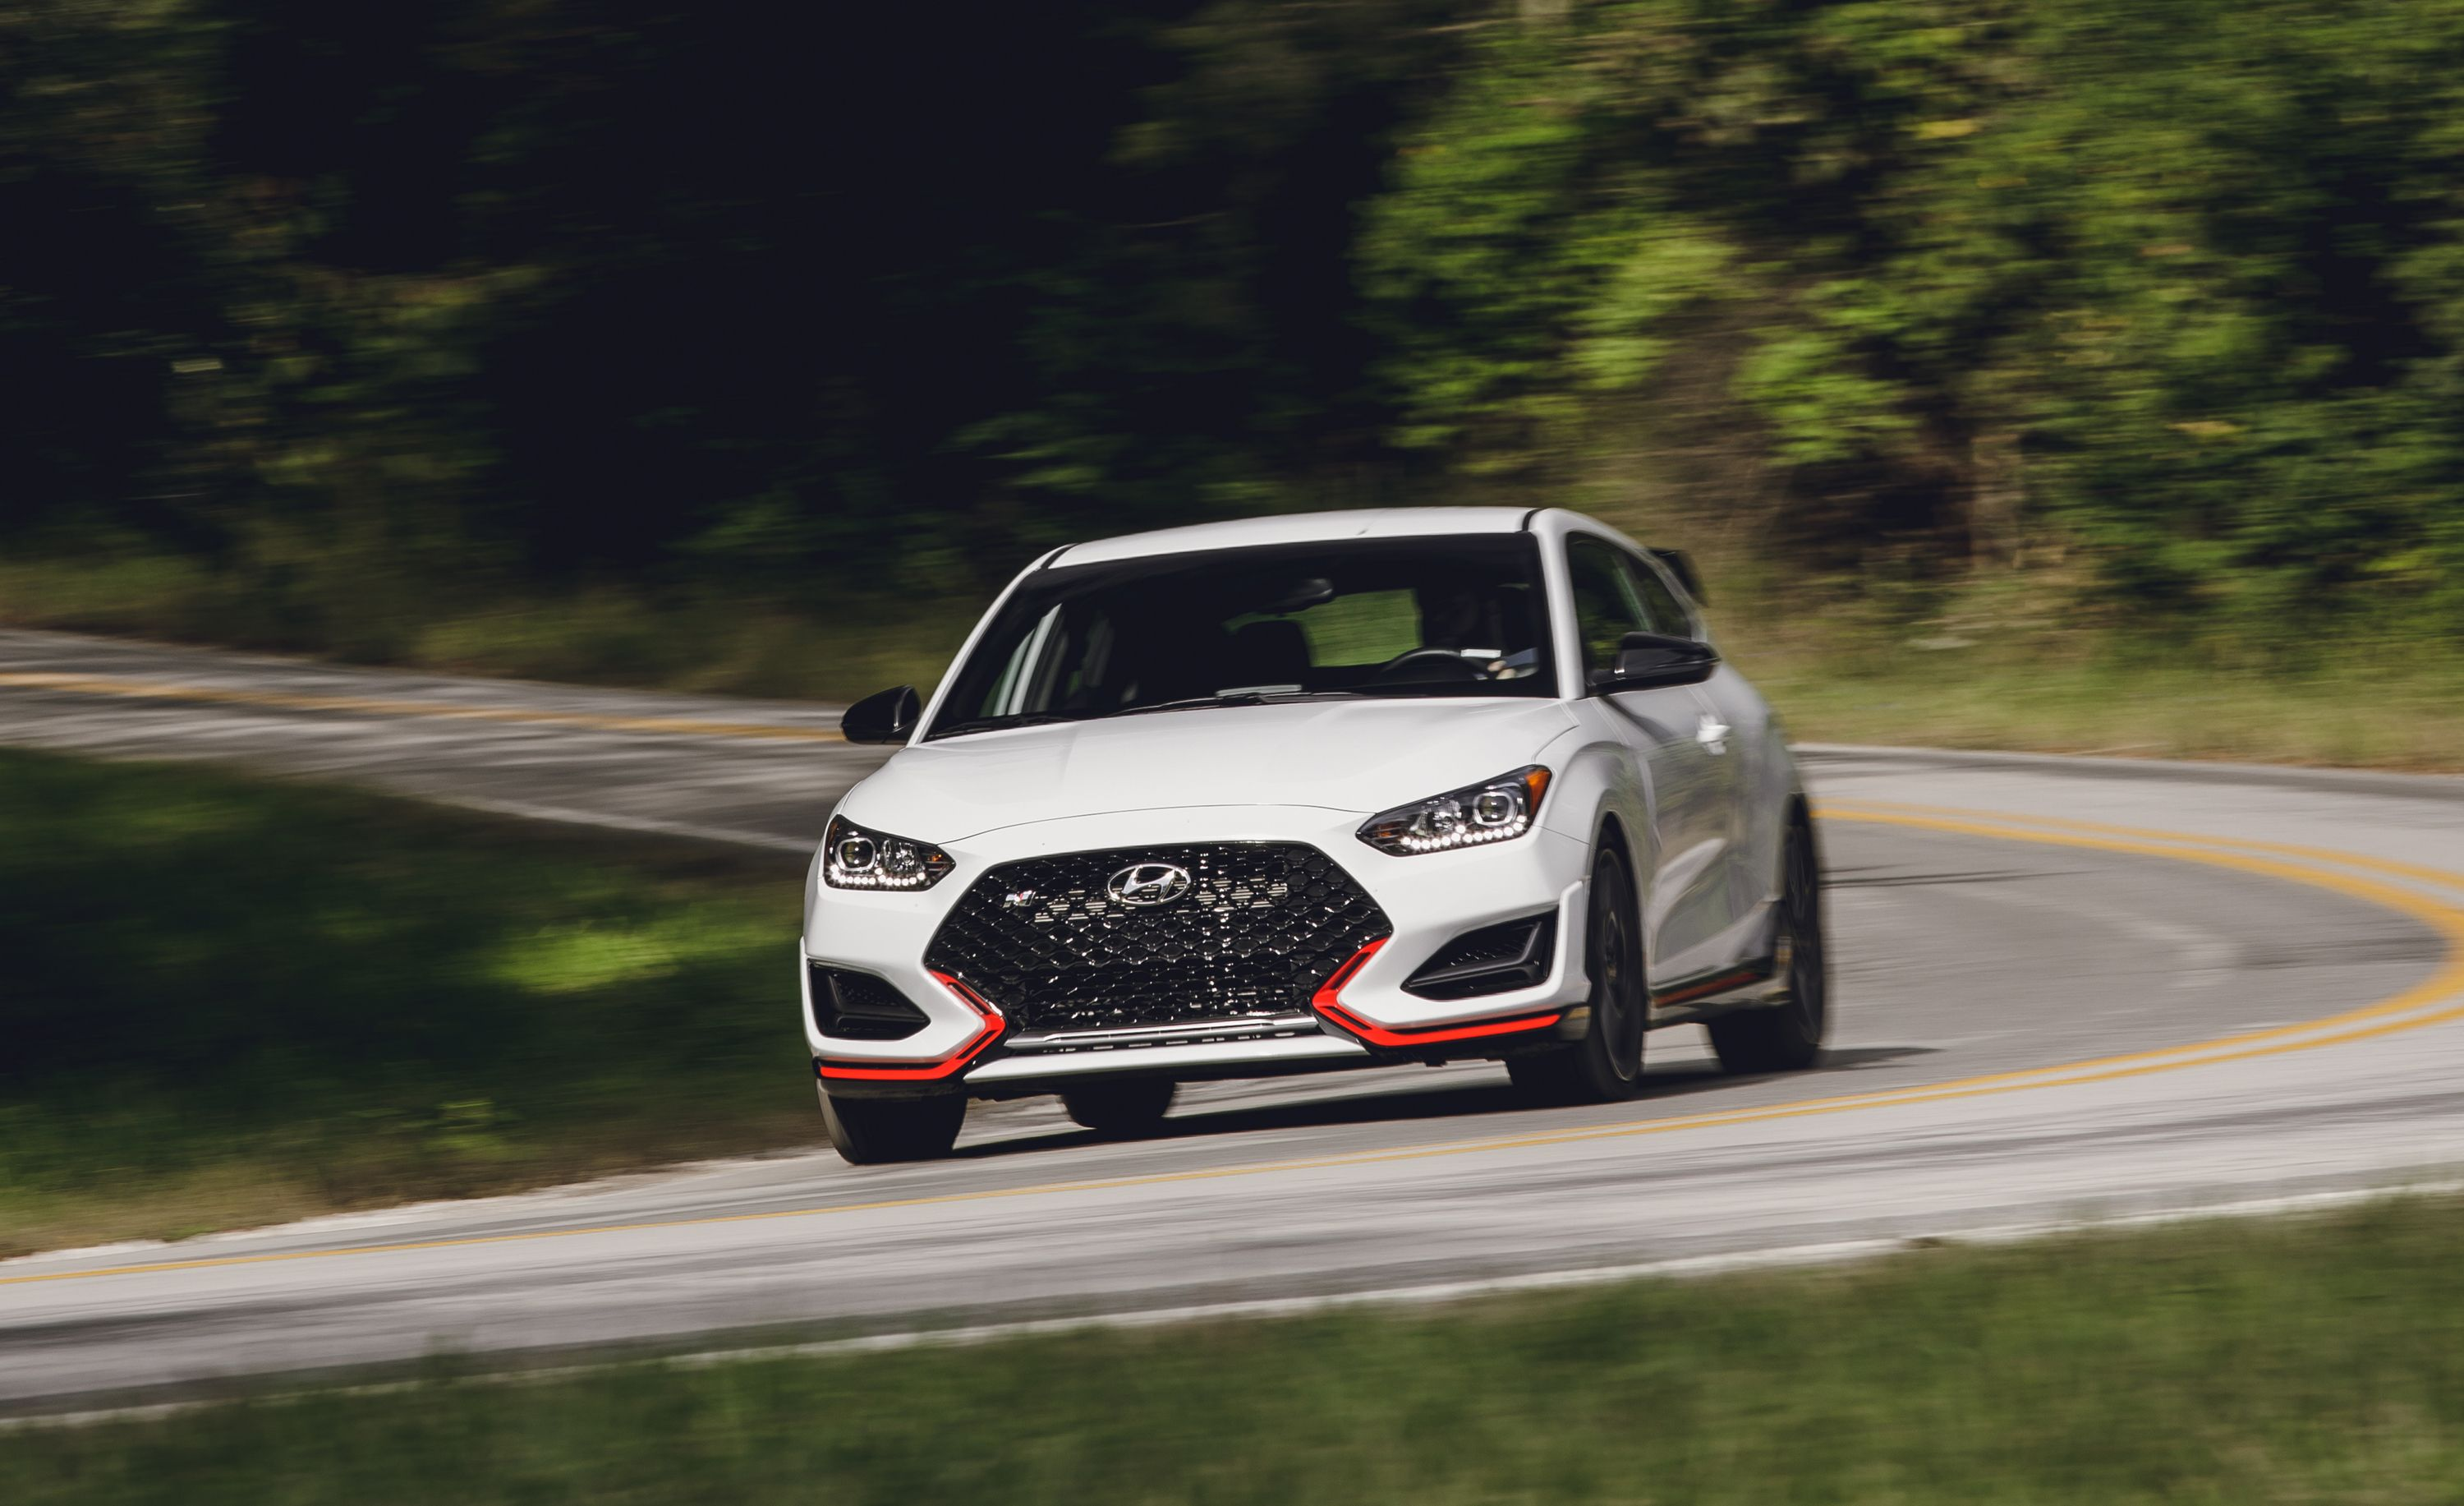 2019 Hyundai Veloster N Big Performance In A Small Package